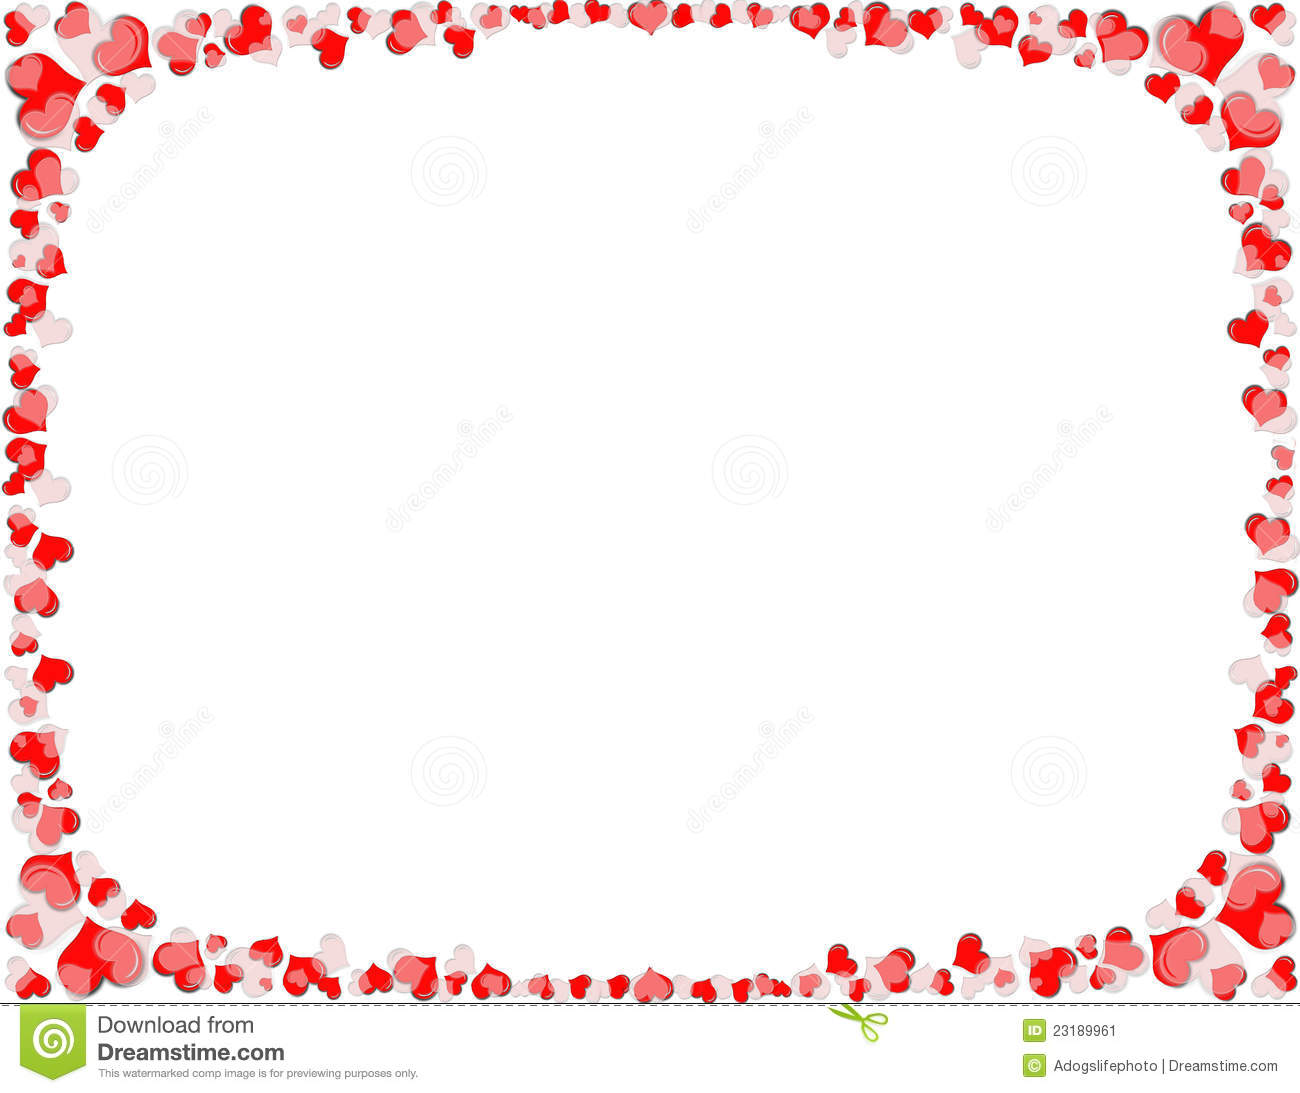 red and white heart border stock illustration illustration of rh dreamstime com heart border svg heart border designs